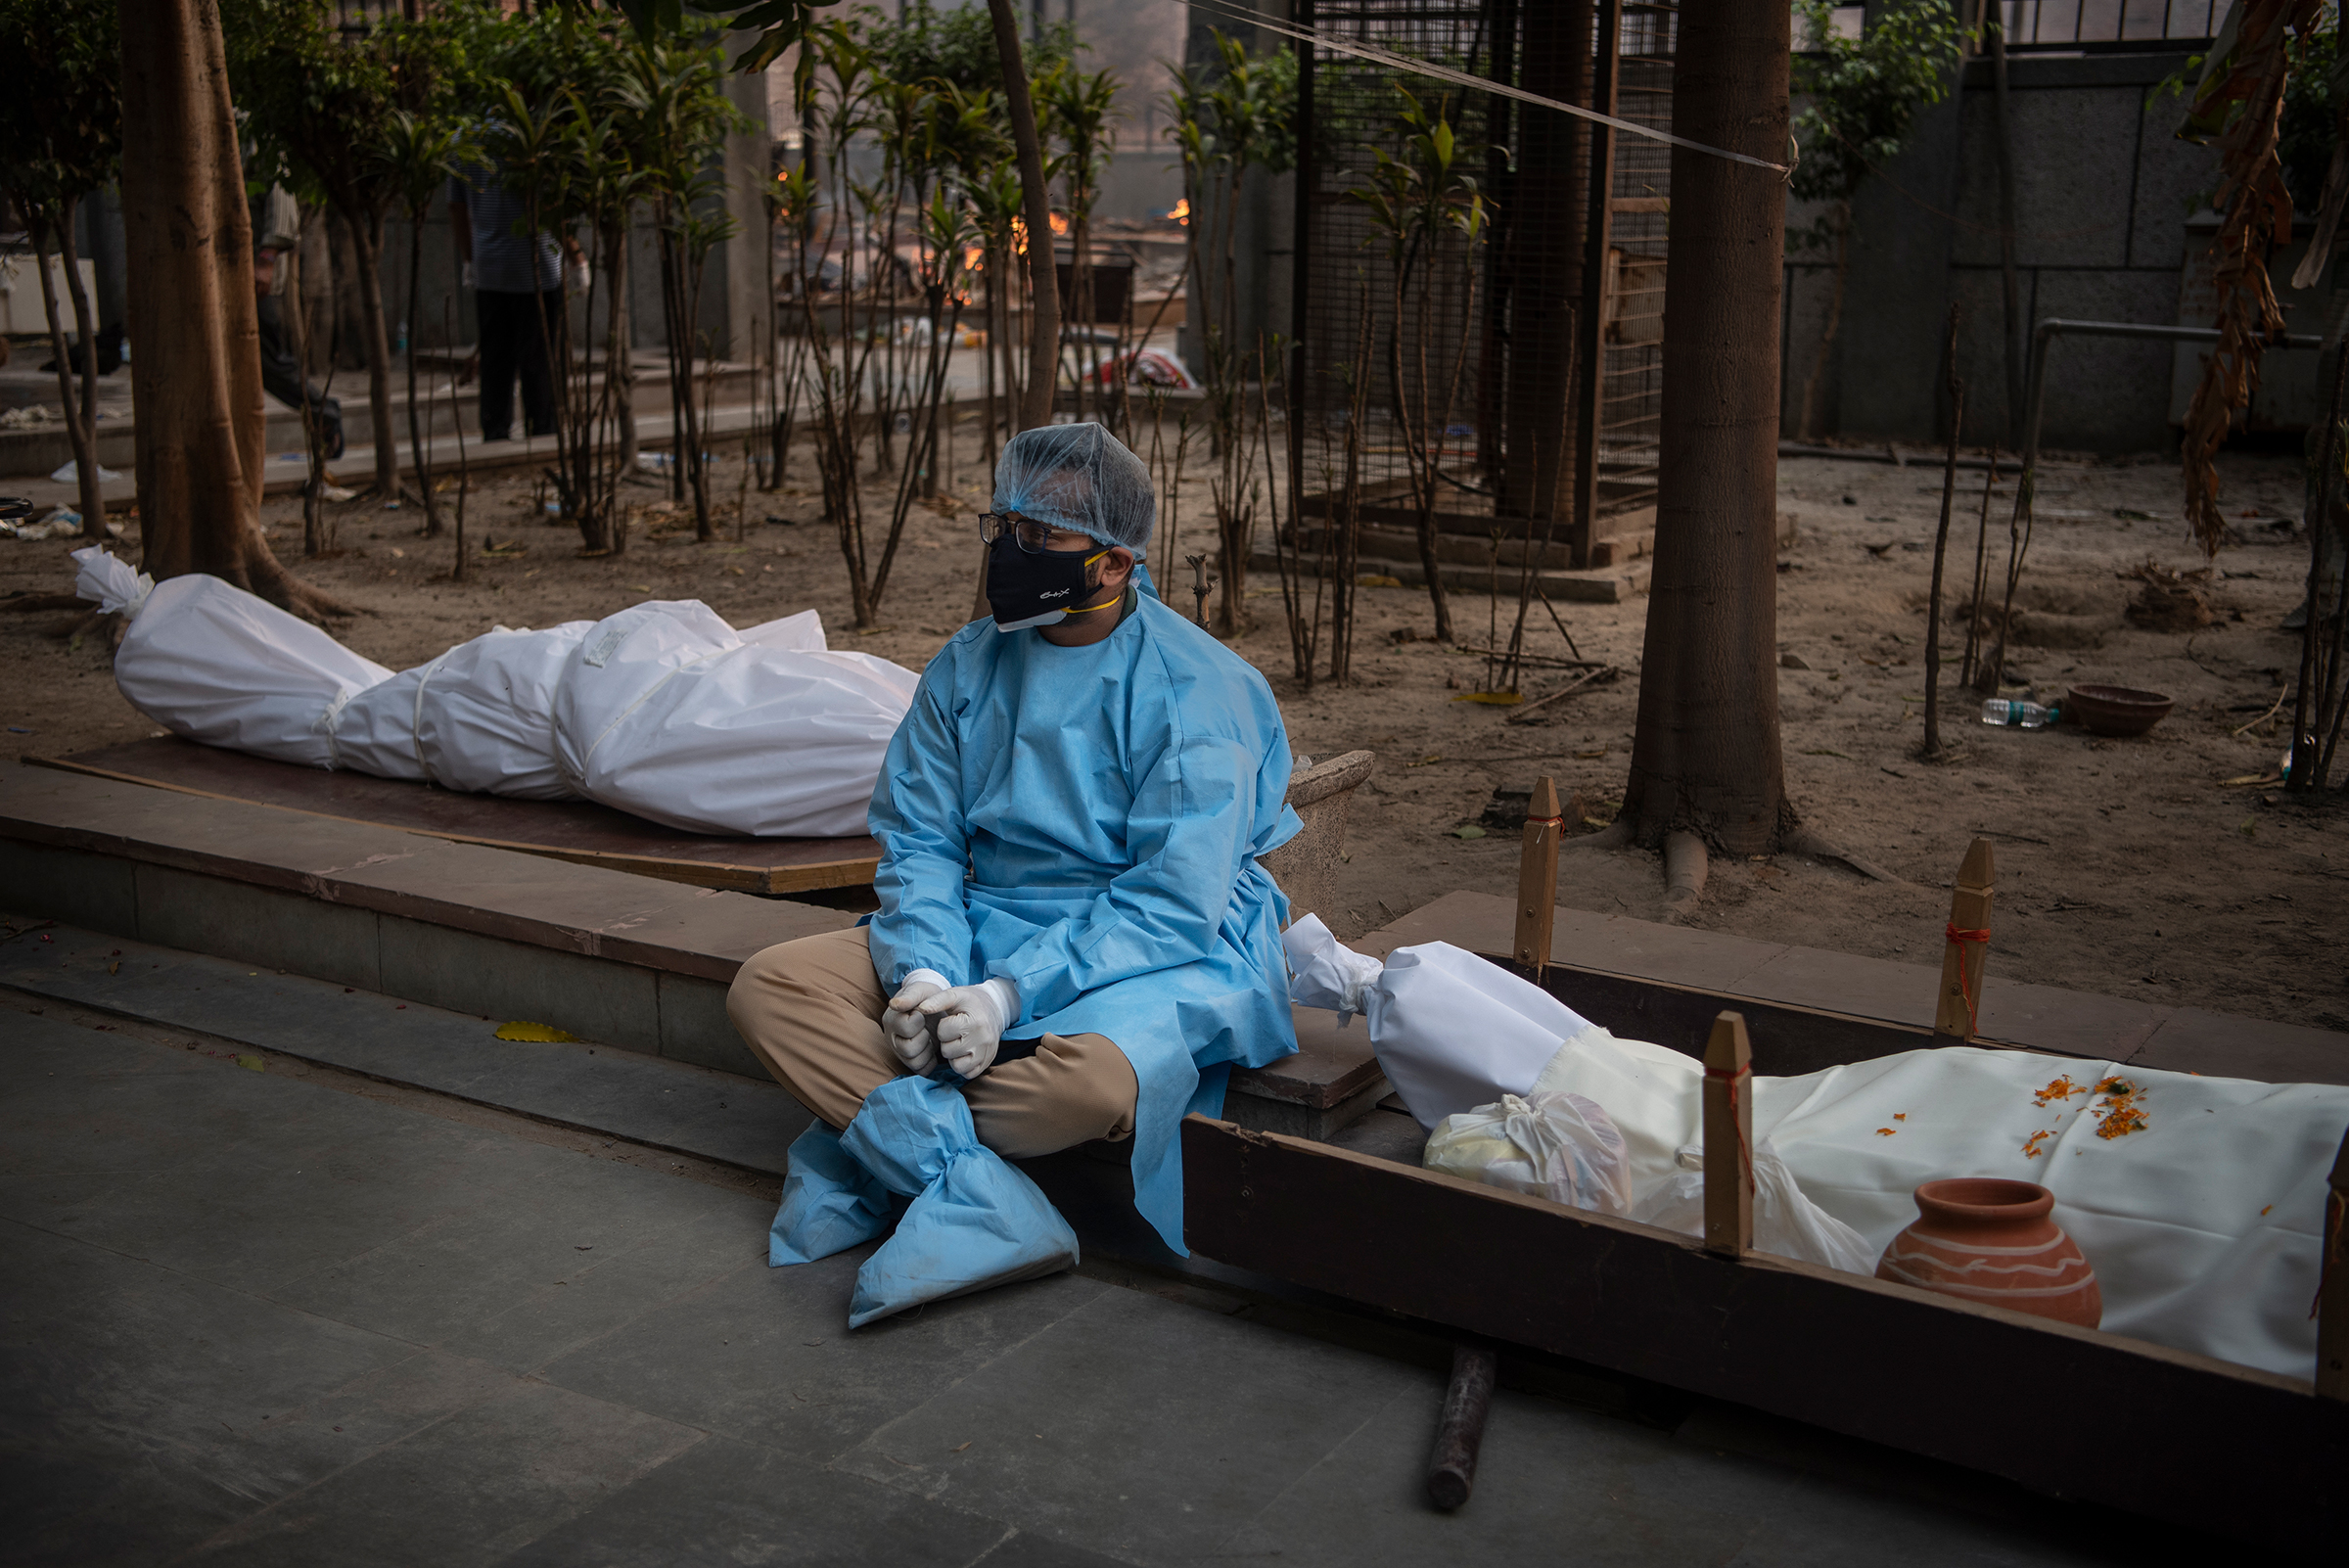 A man waits for his family's turn to cremate the body of their loved one, who died from COVID-19, in New Delhi on April 27.